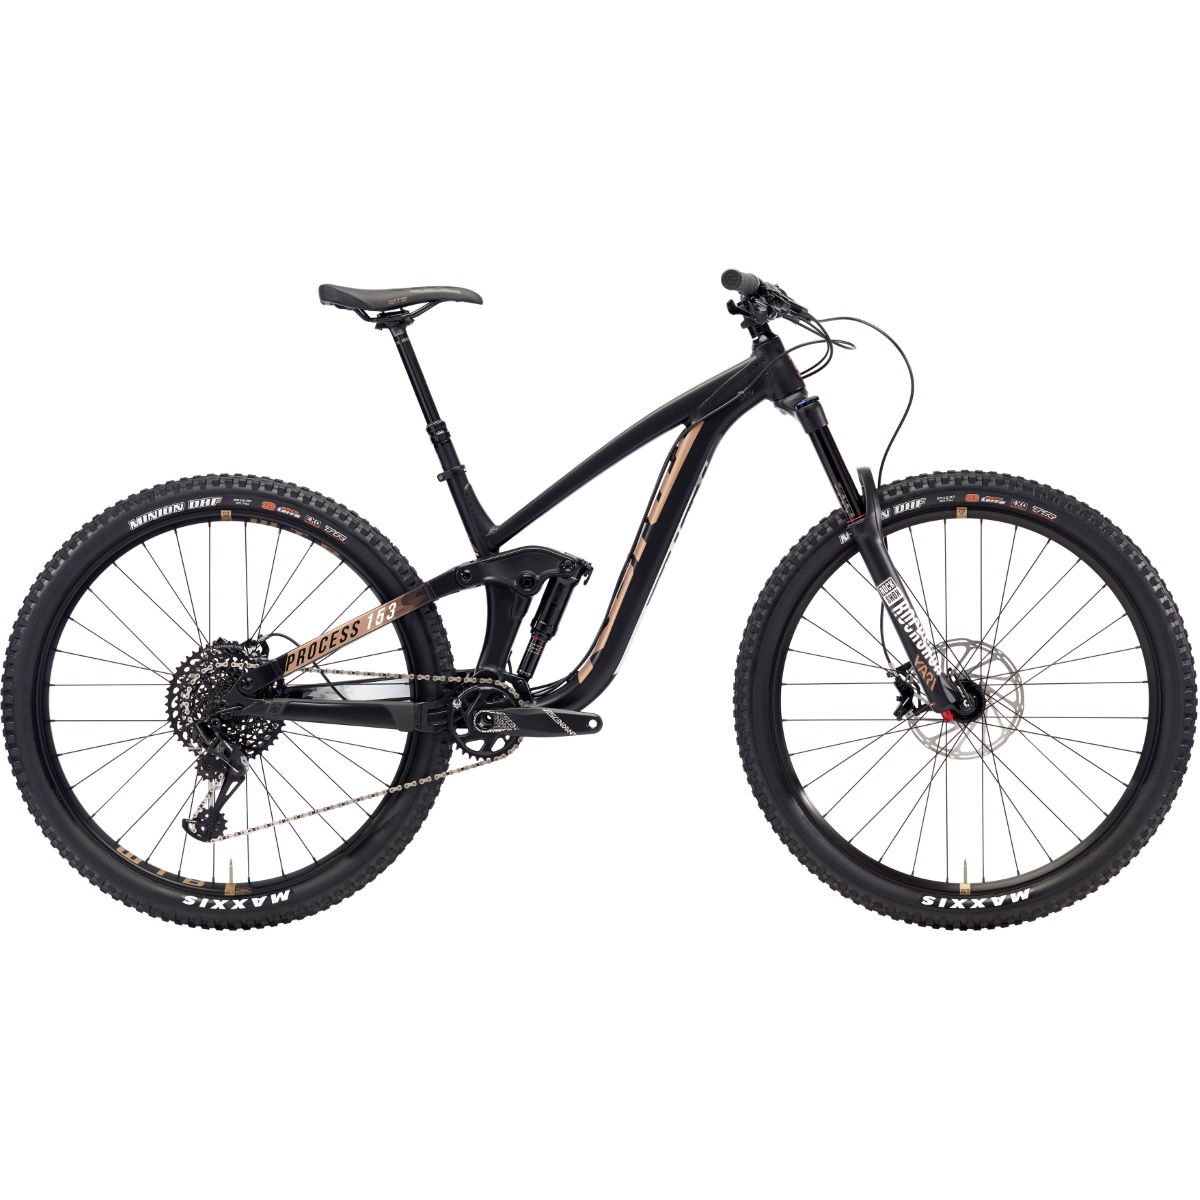 VTT Kona Prcoess 153 AL/DL 29 pouces (2018) - X-Large Stock Bike